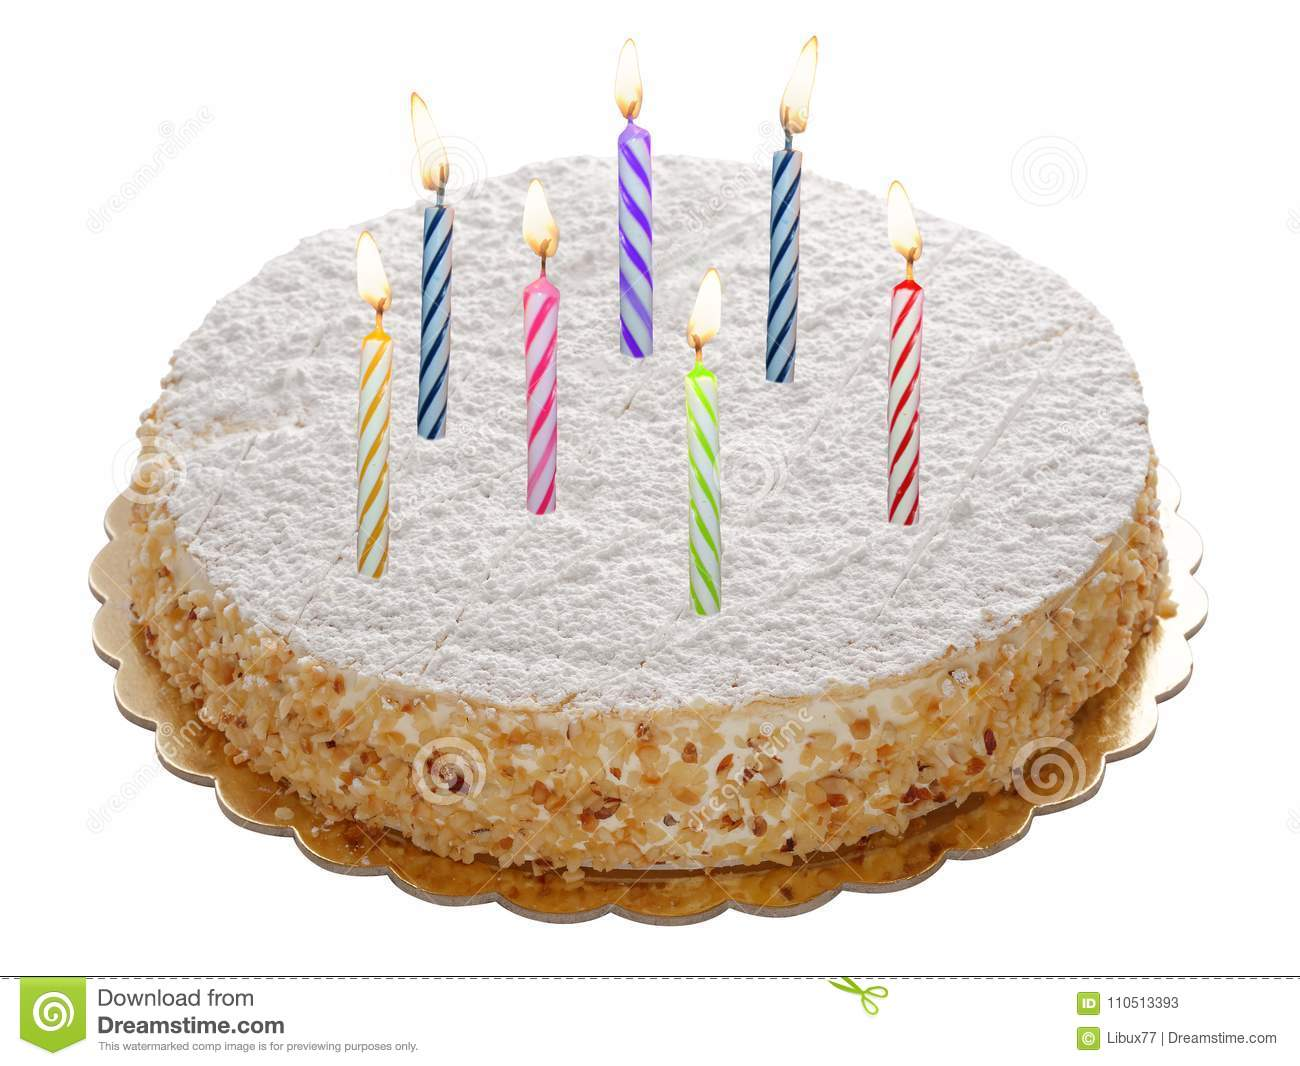 Round whole cake with lit candles isolated